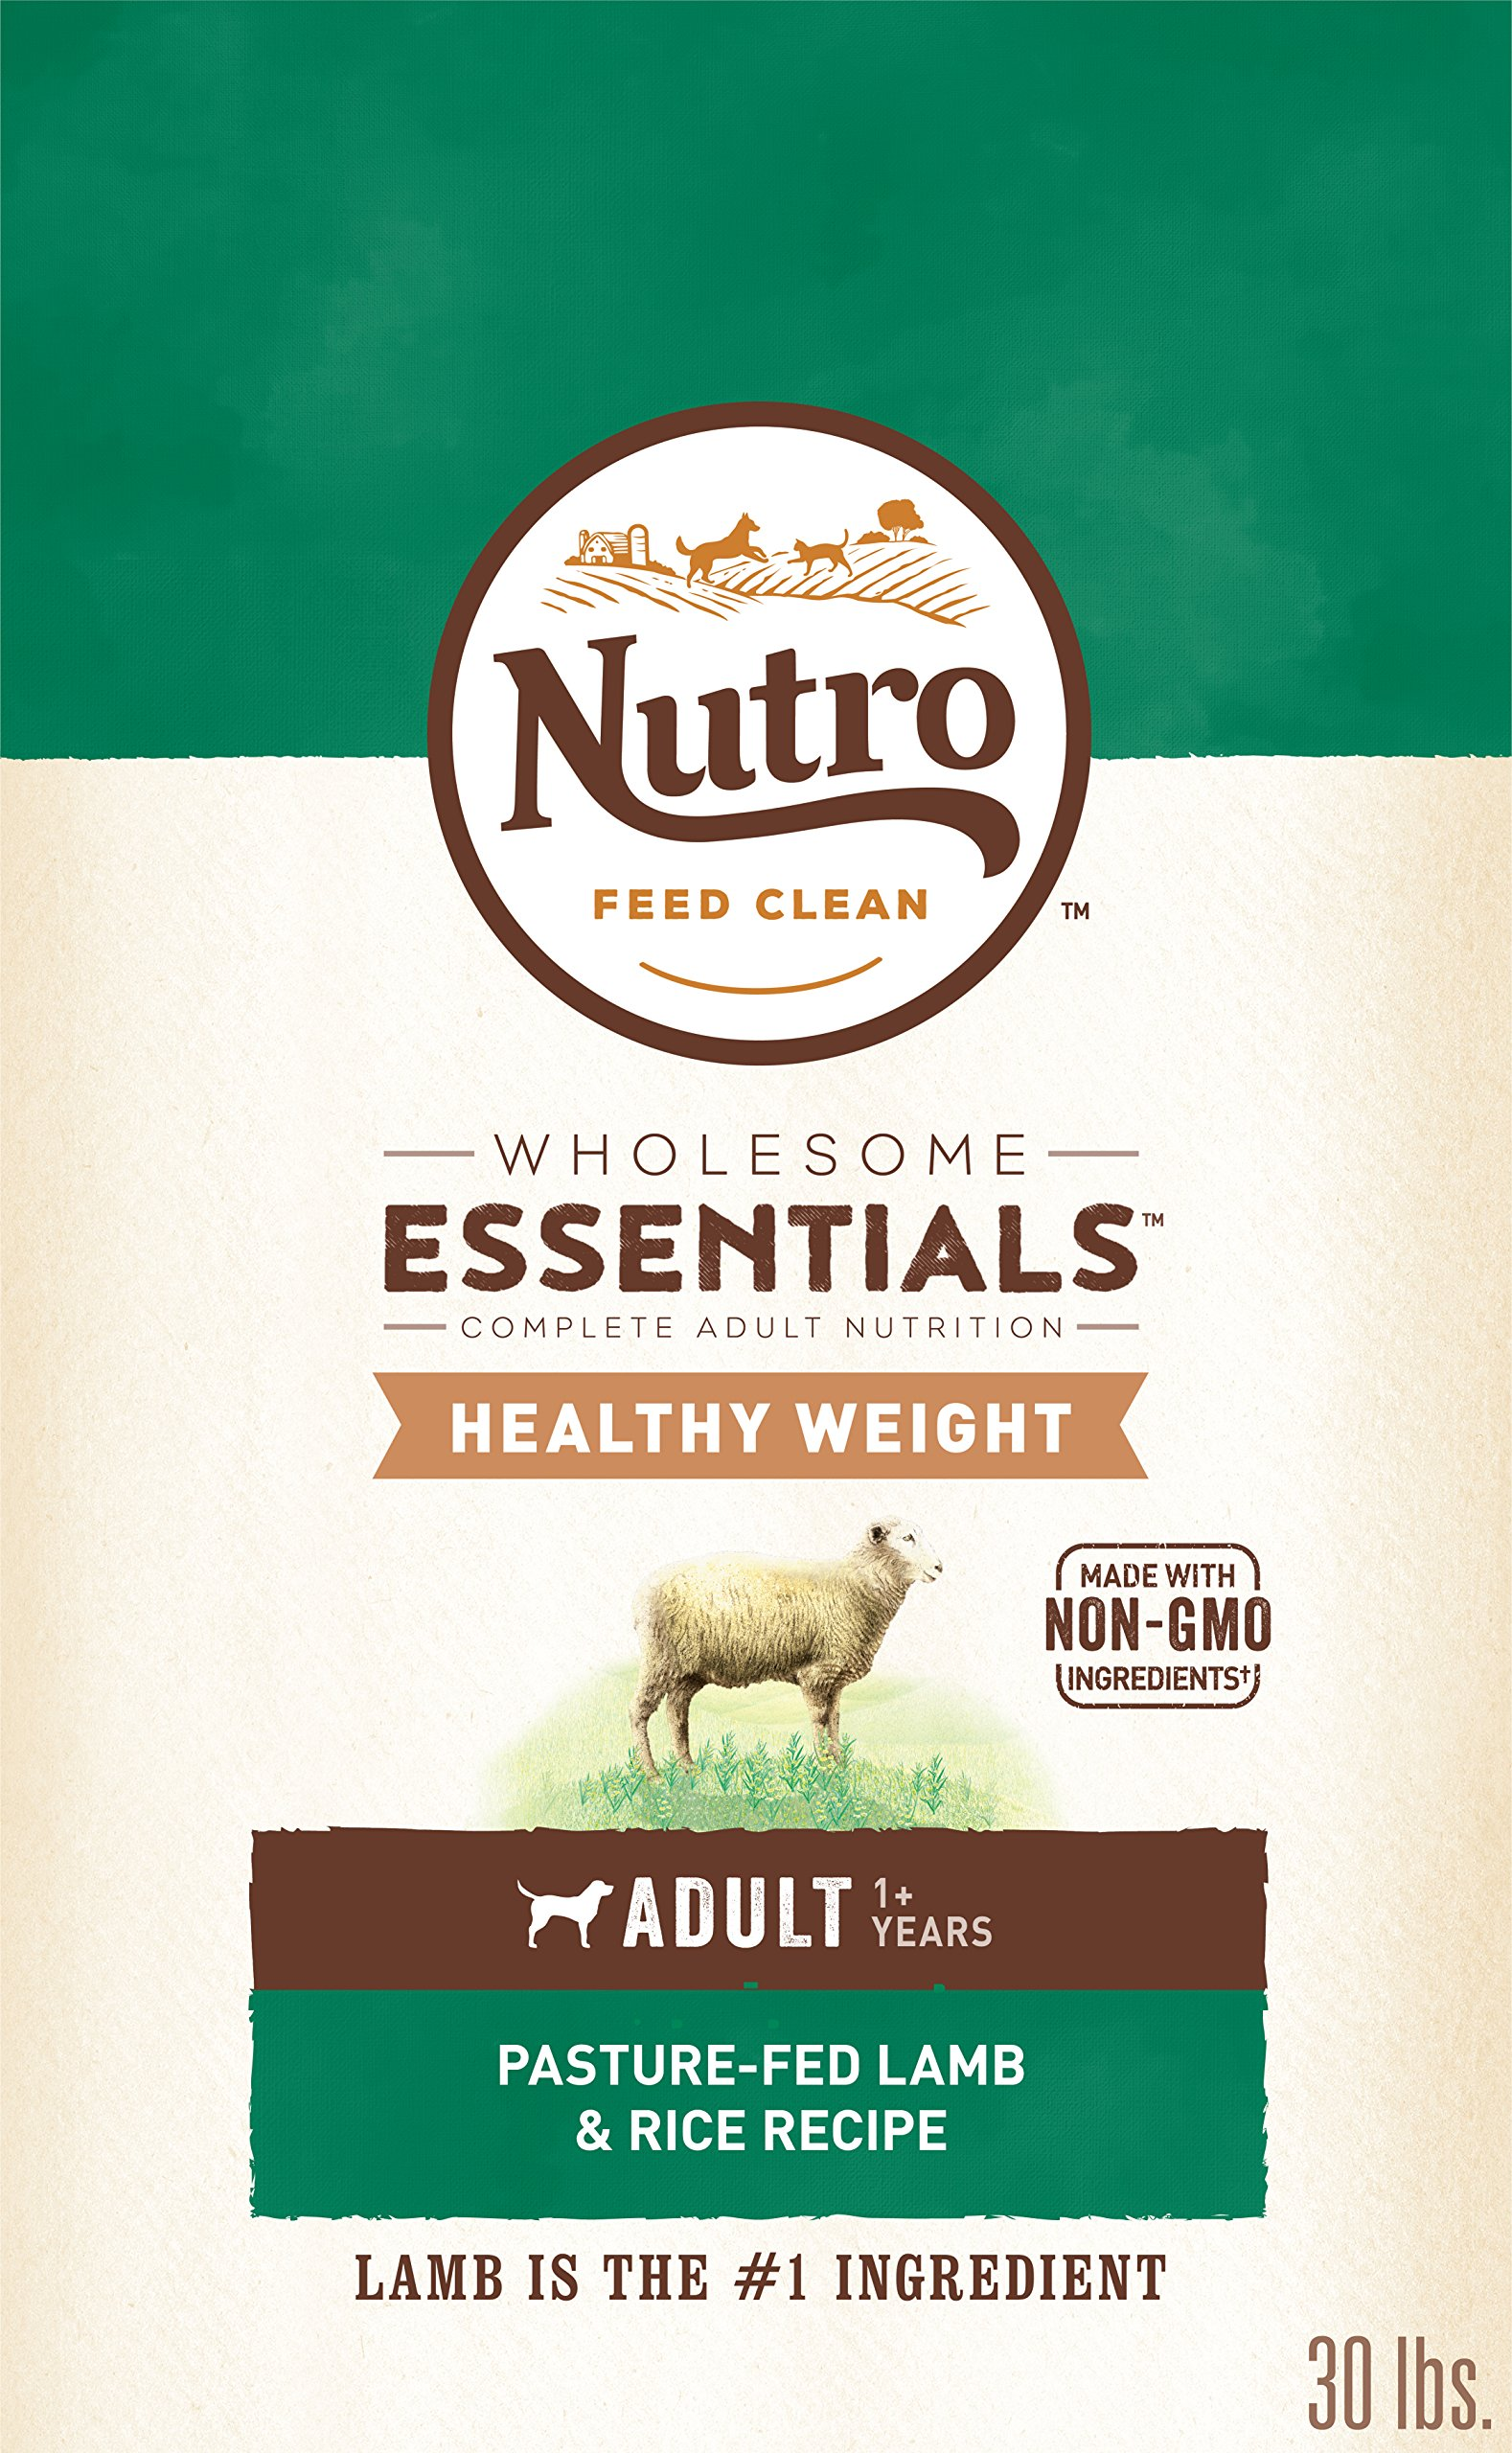 Nutro Wholesome Essentials Healthy Weight Adult Dry Dog Food Pasture-Fed Lamb & Rice Recipe, 30 lb. Bag by Nutro